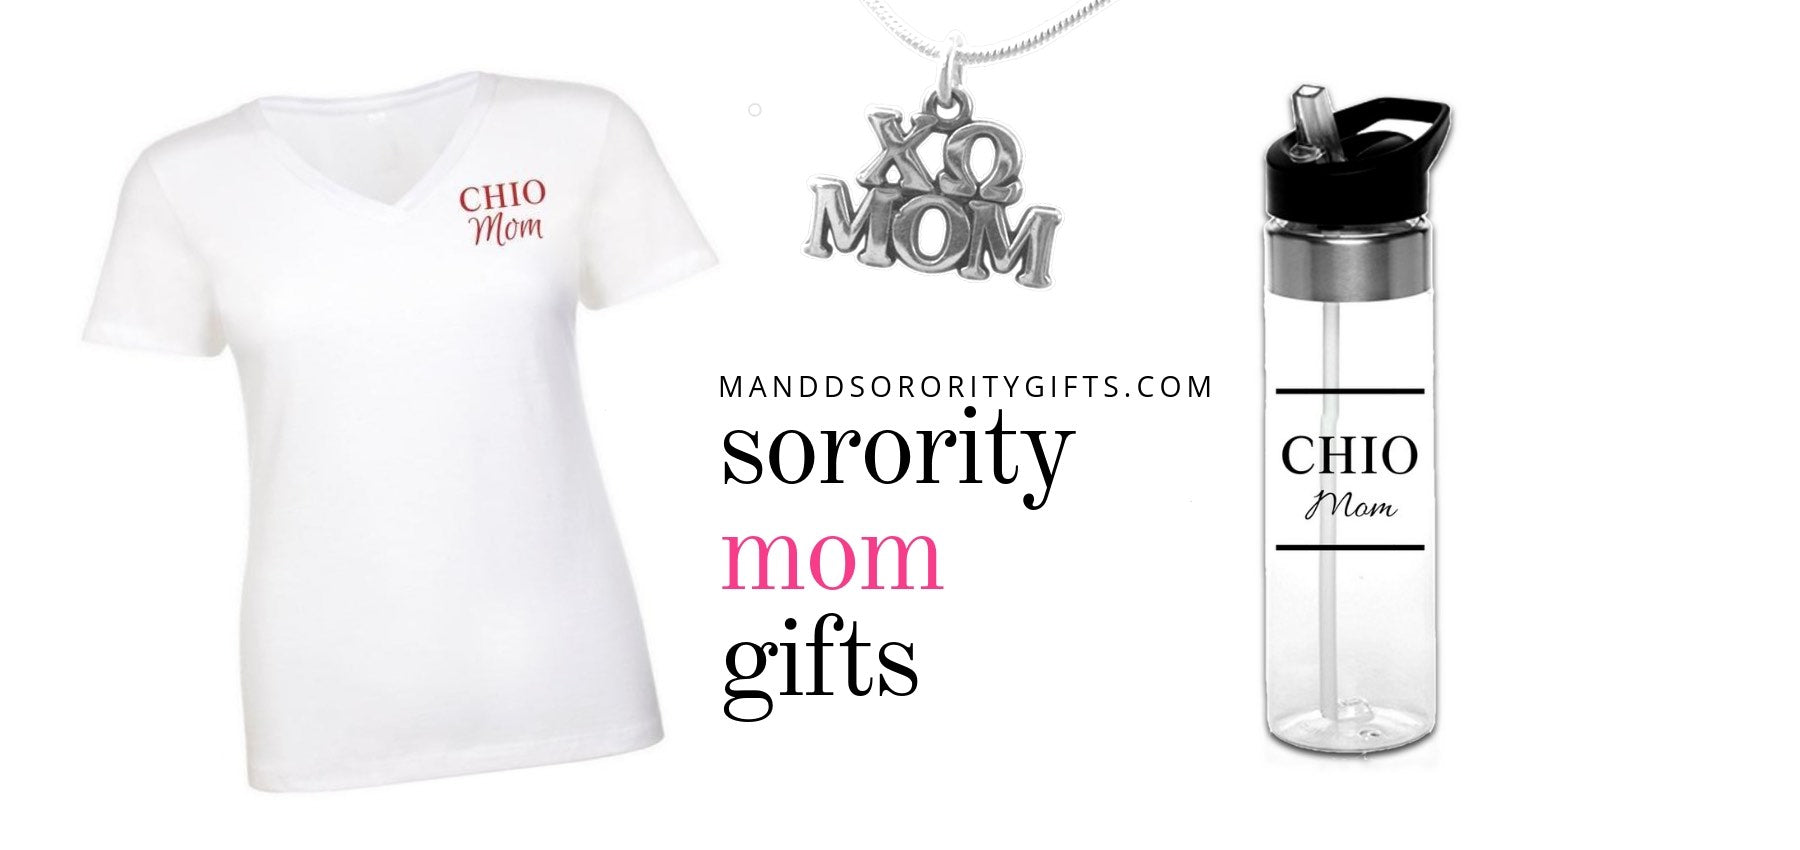 Chi Omega Mom Gifts Promo (CHIO)